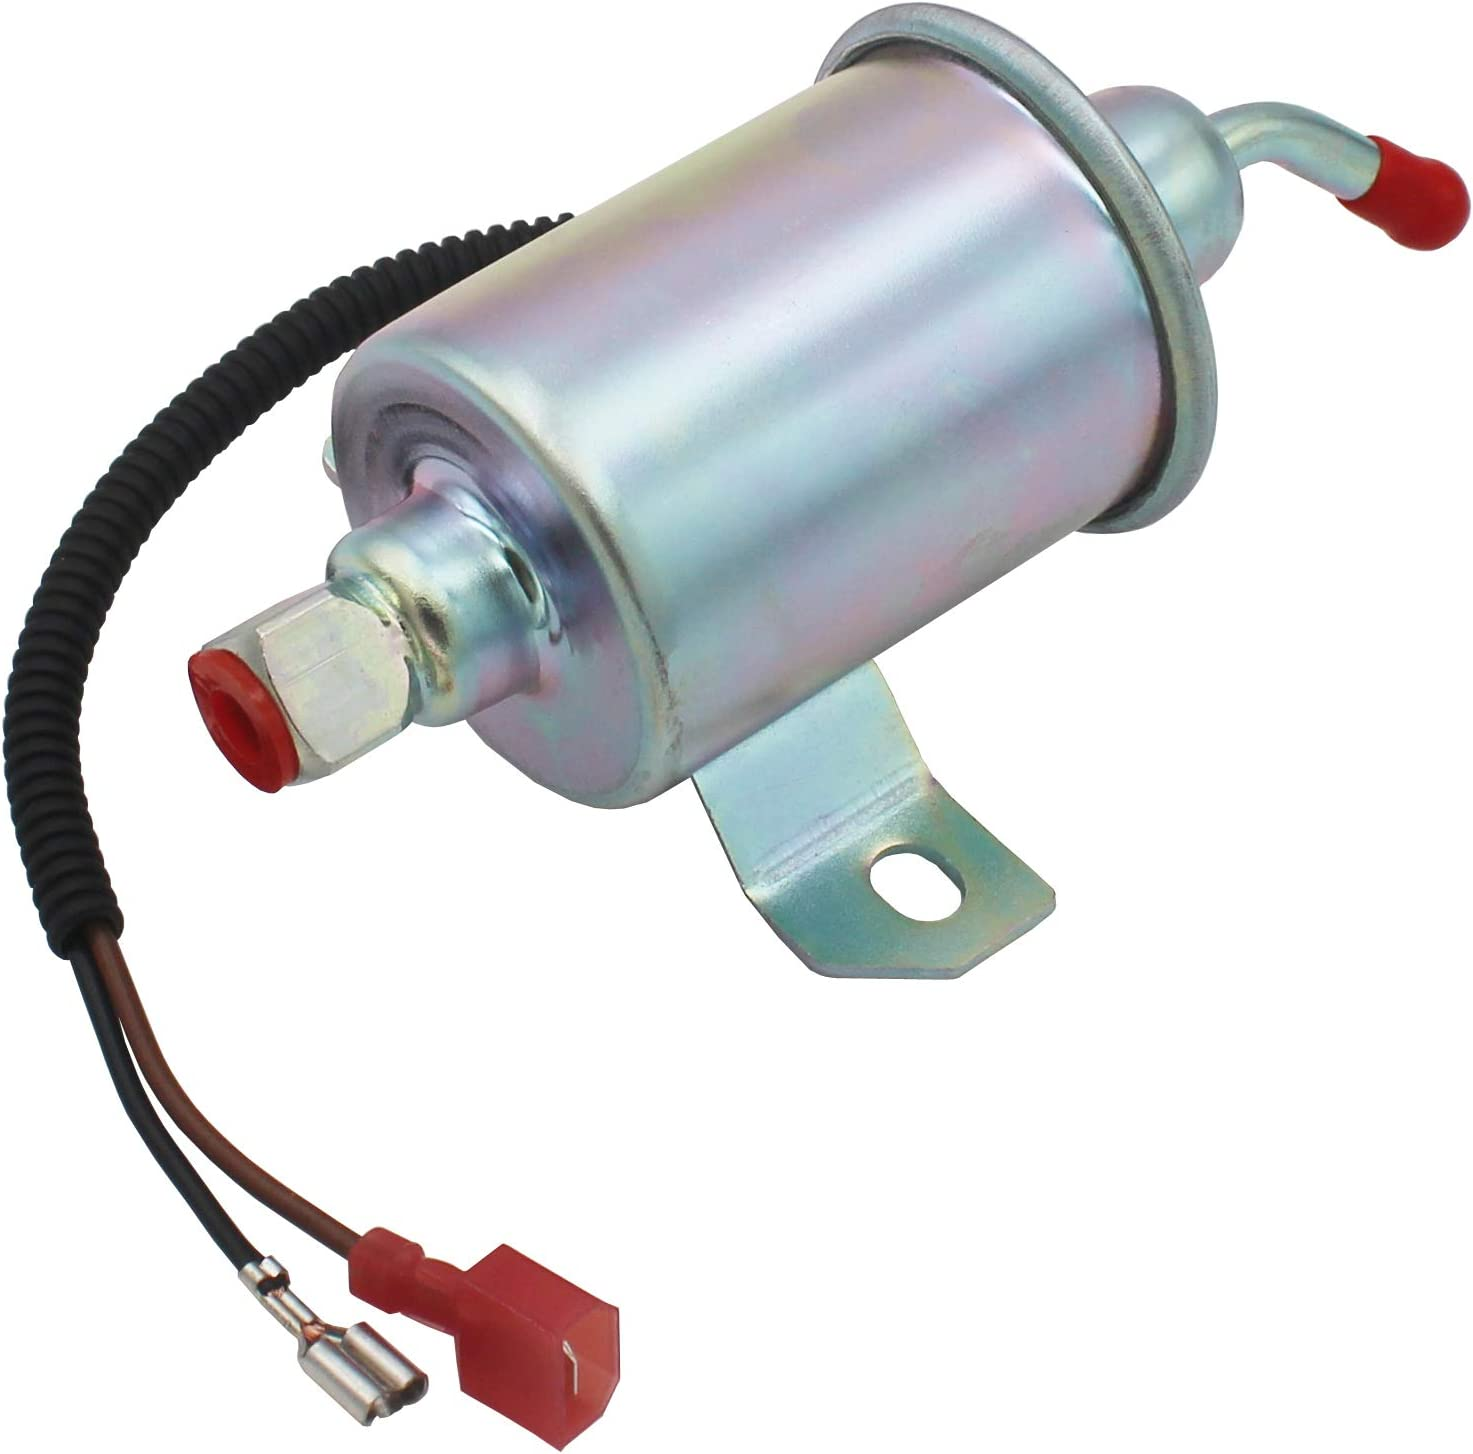 Electric Fuel Pump Replaces of Cummins model# A029F889 ONAN #149-2311#149-2311-02 Airtex E11006 Spectra SP8124 Herko Automotive RV004.